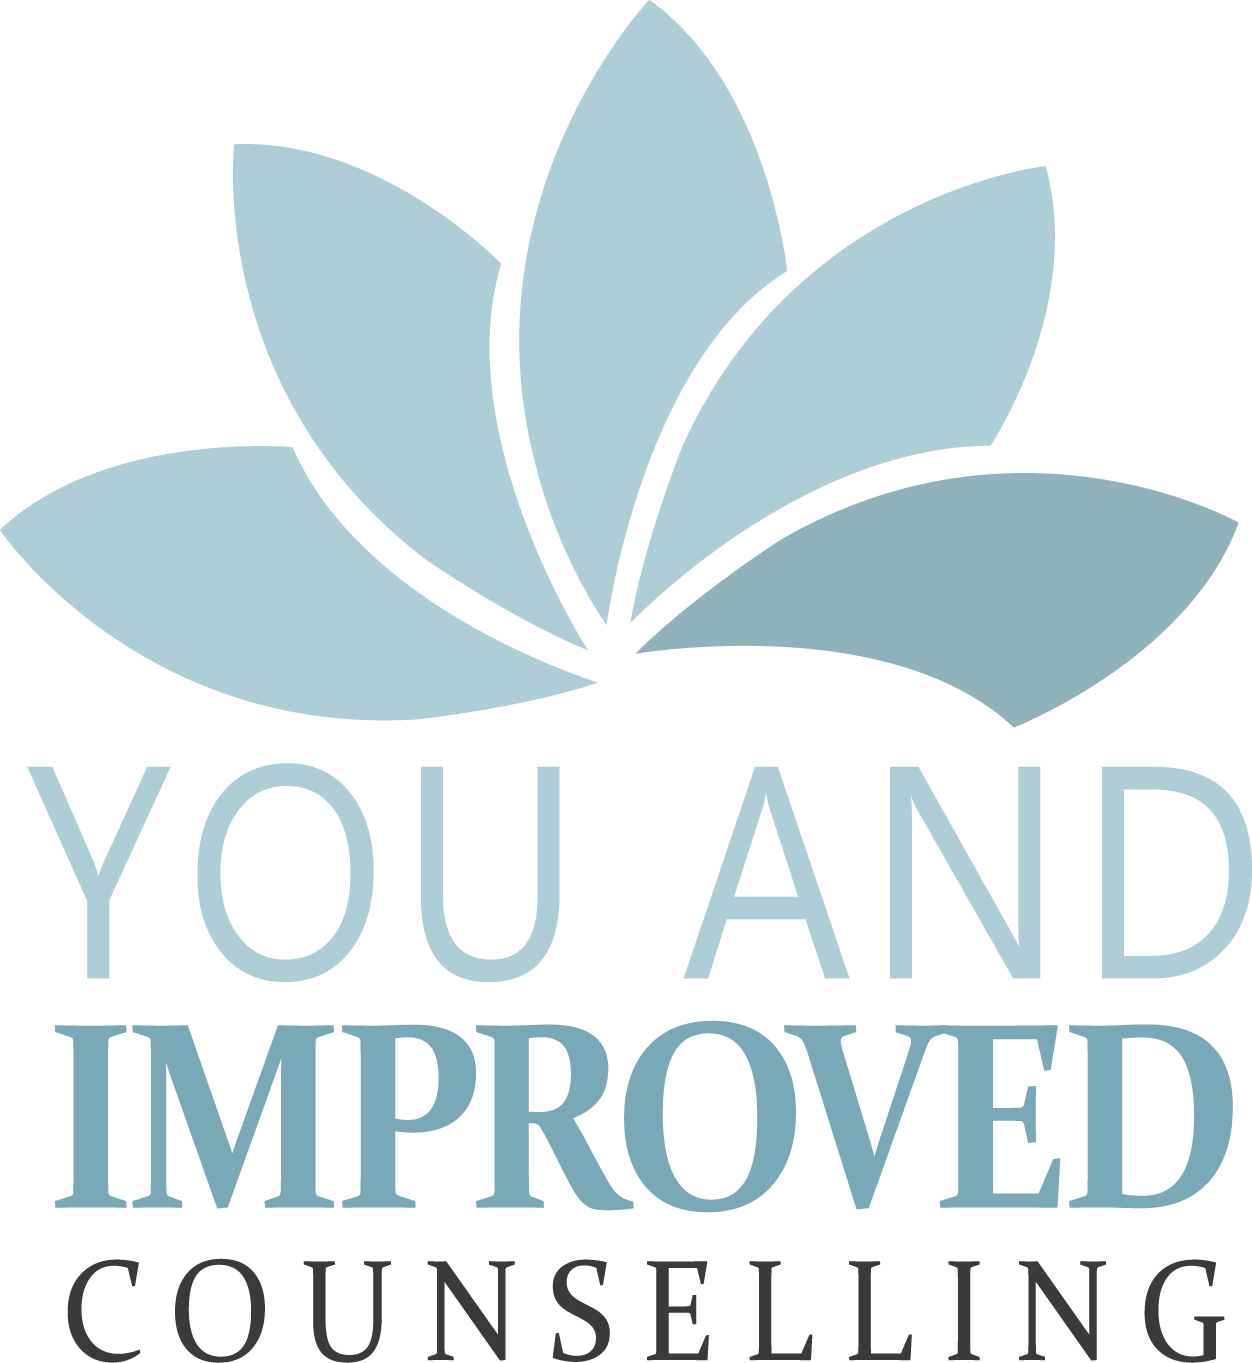 You & Improved Counselling